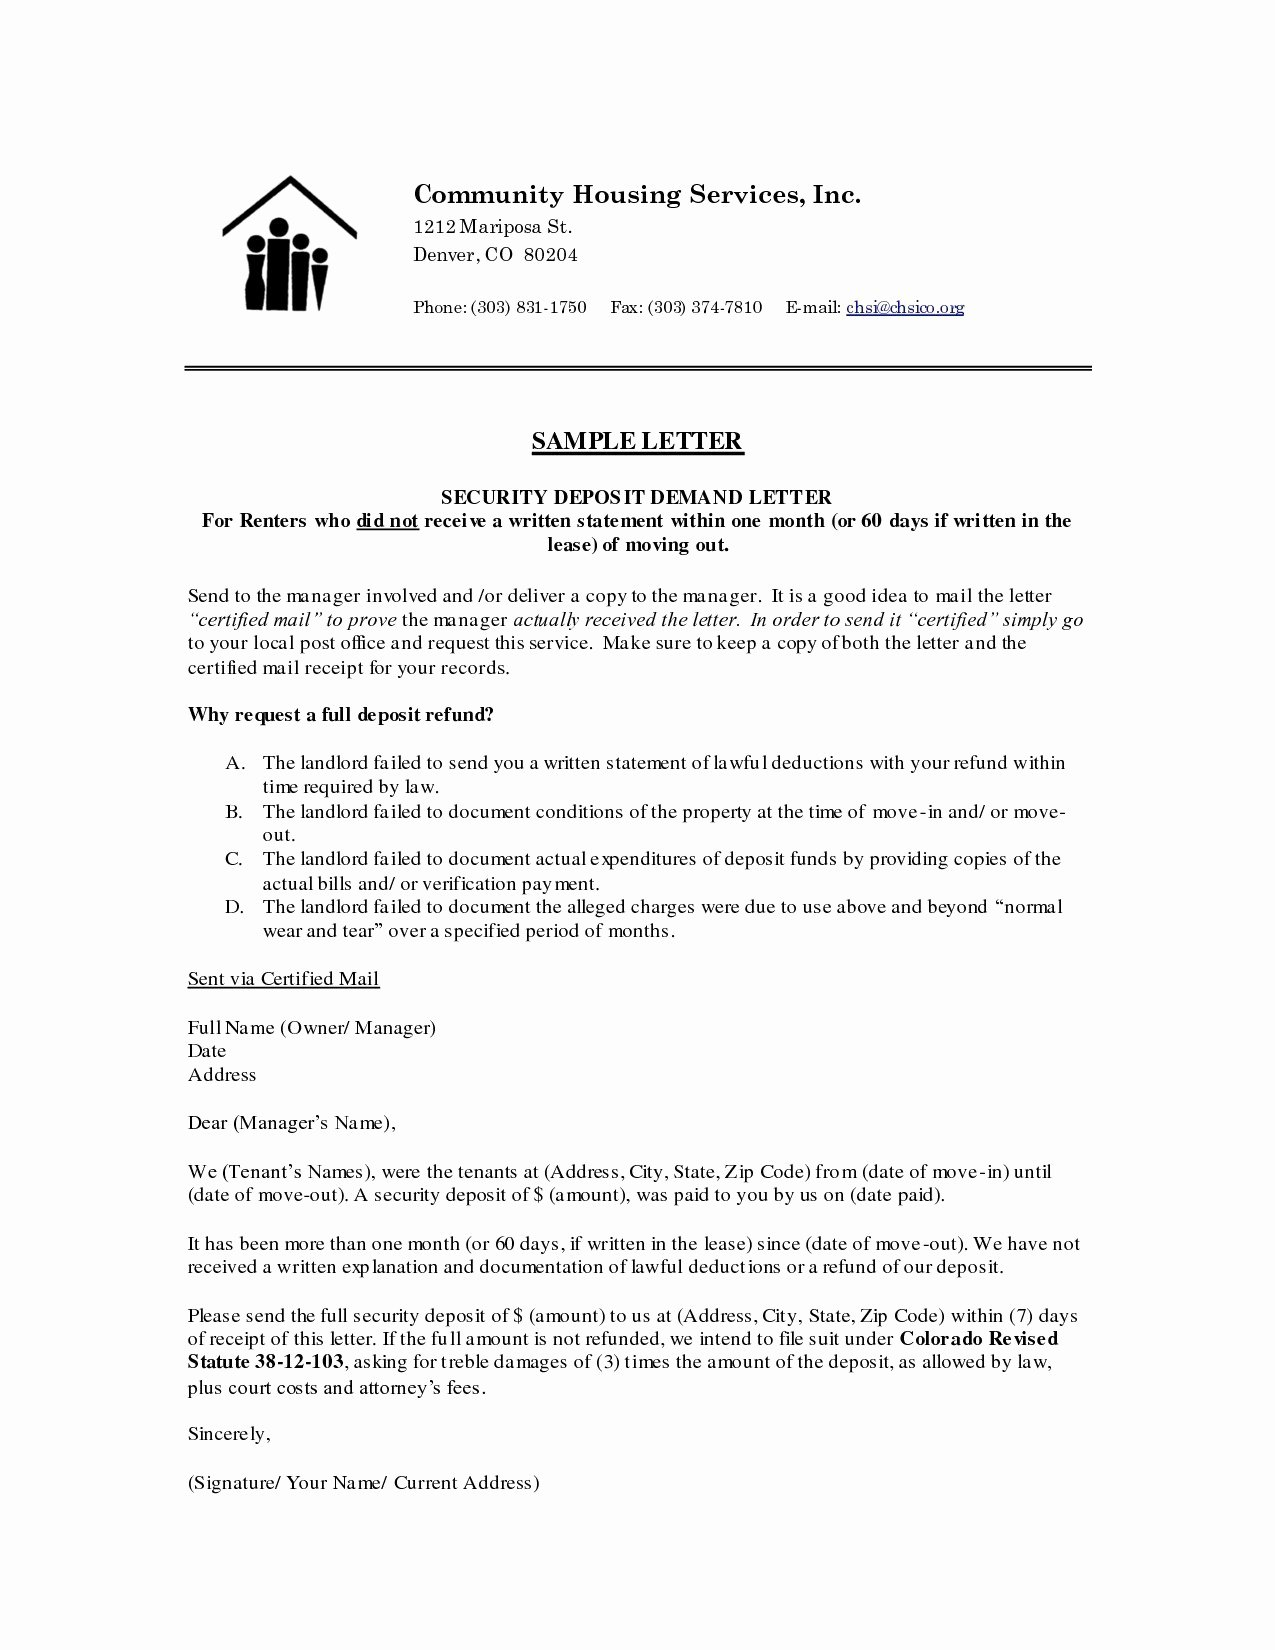 Refund Letter Templates Lovely 12 Security Deposit Return Letter Template Inspiration